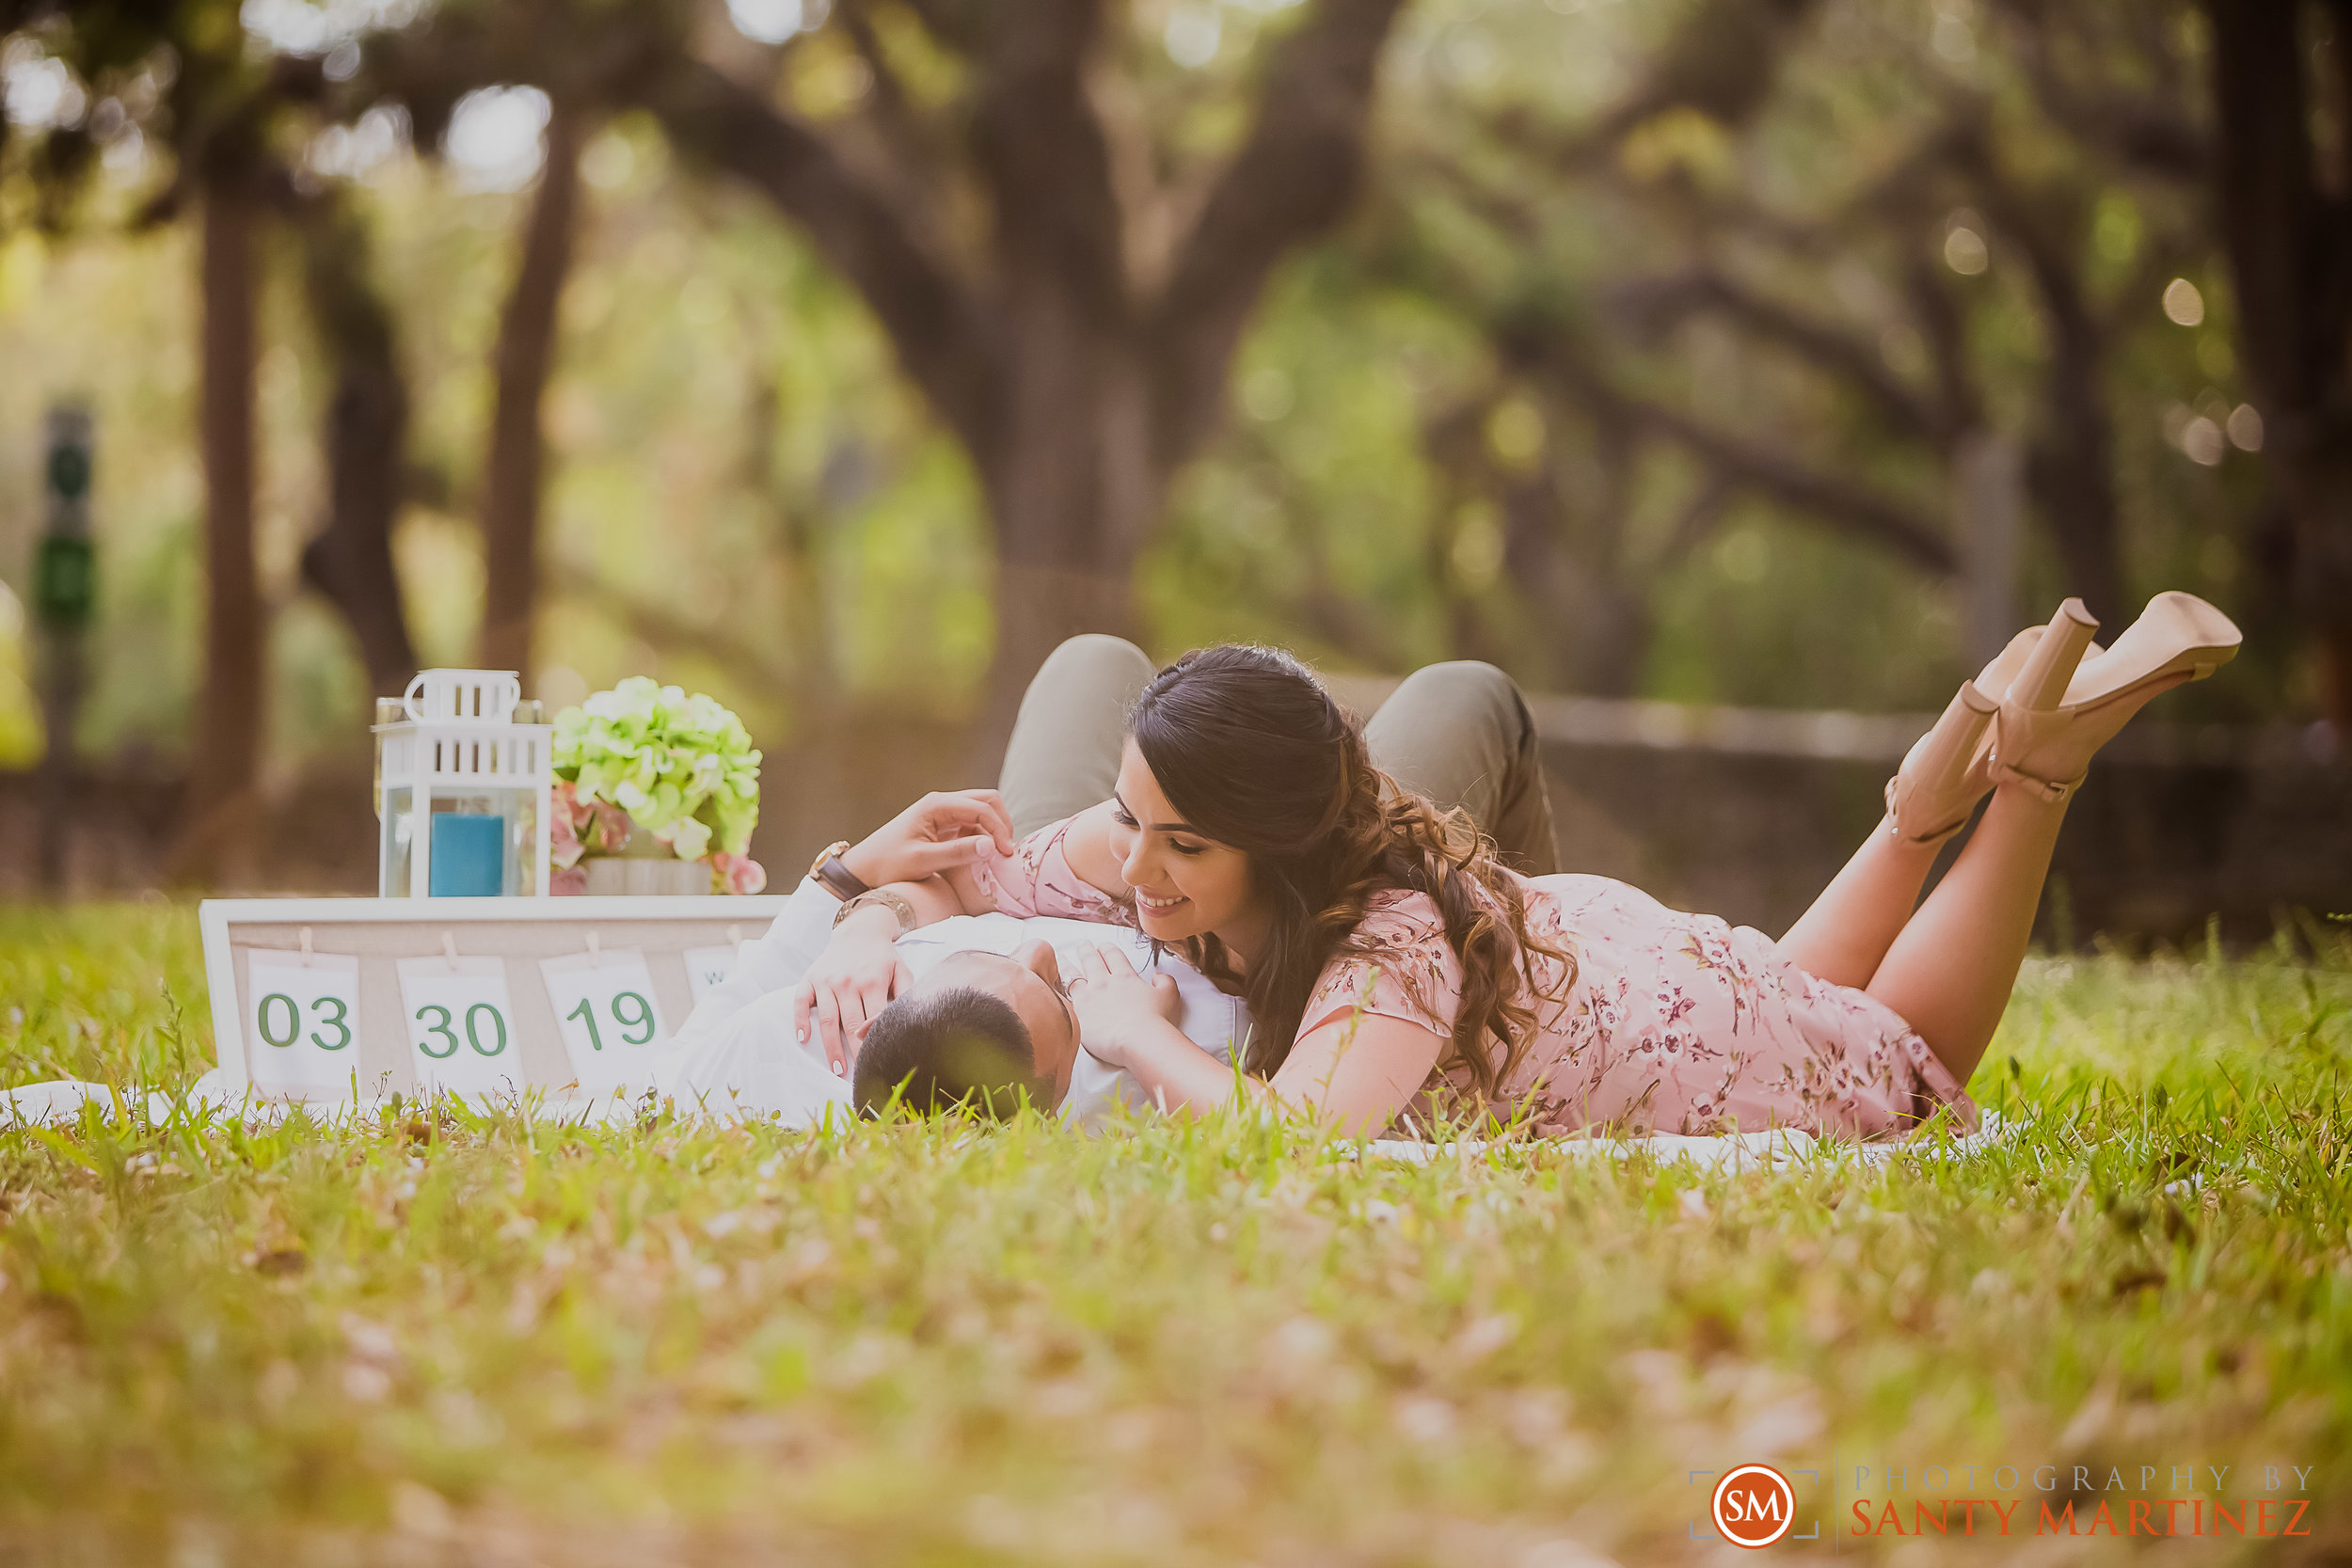 Engagement Session Matheson Hammock Park - Photography by Santy Martinez-13.jpg